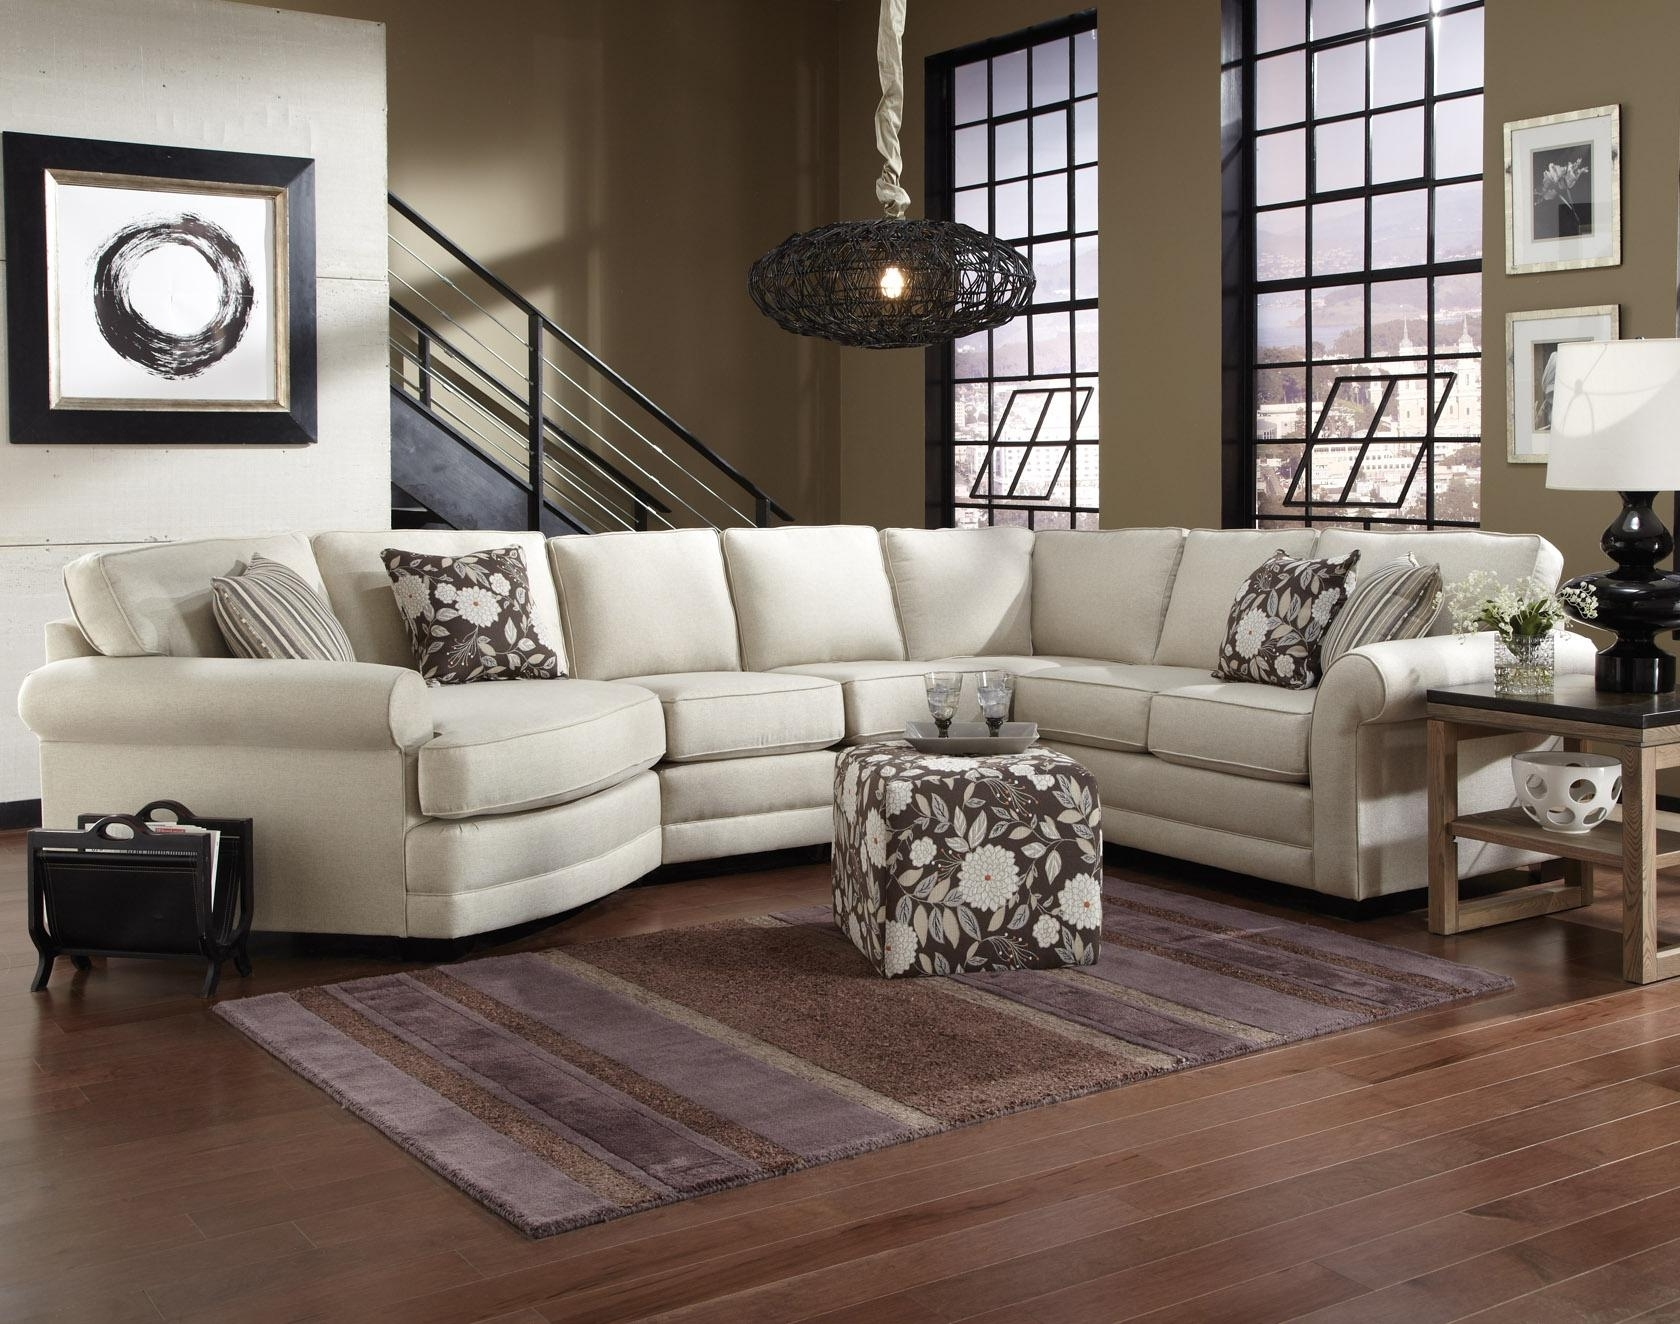 England Brantley 5 Seat Sectional Sofa With Cuddler (View 19 of 20)